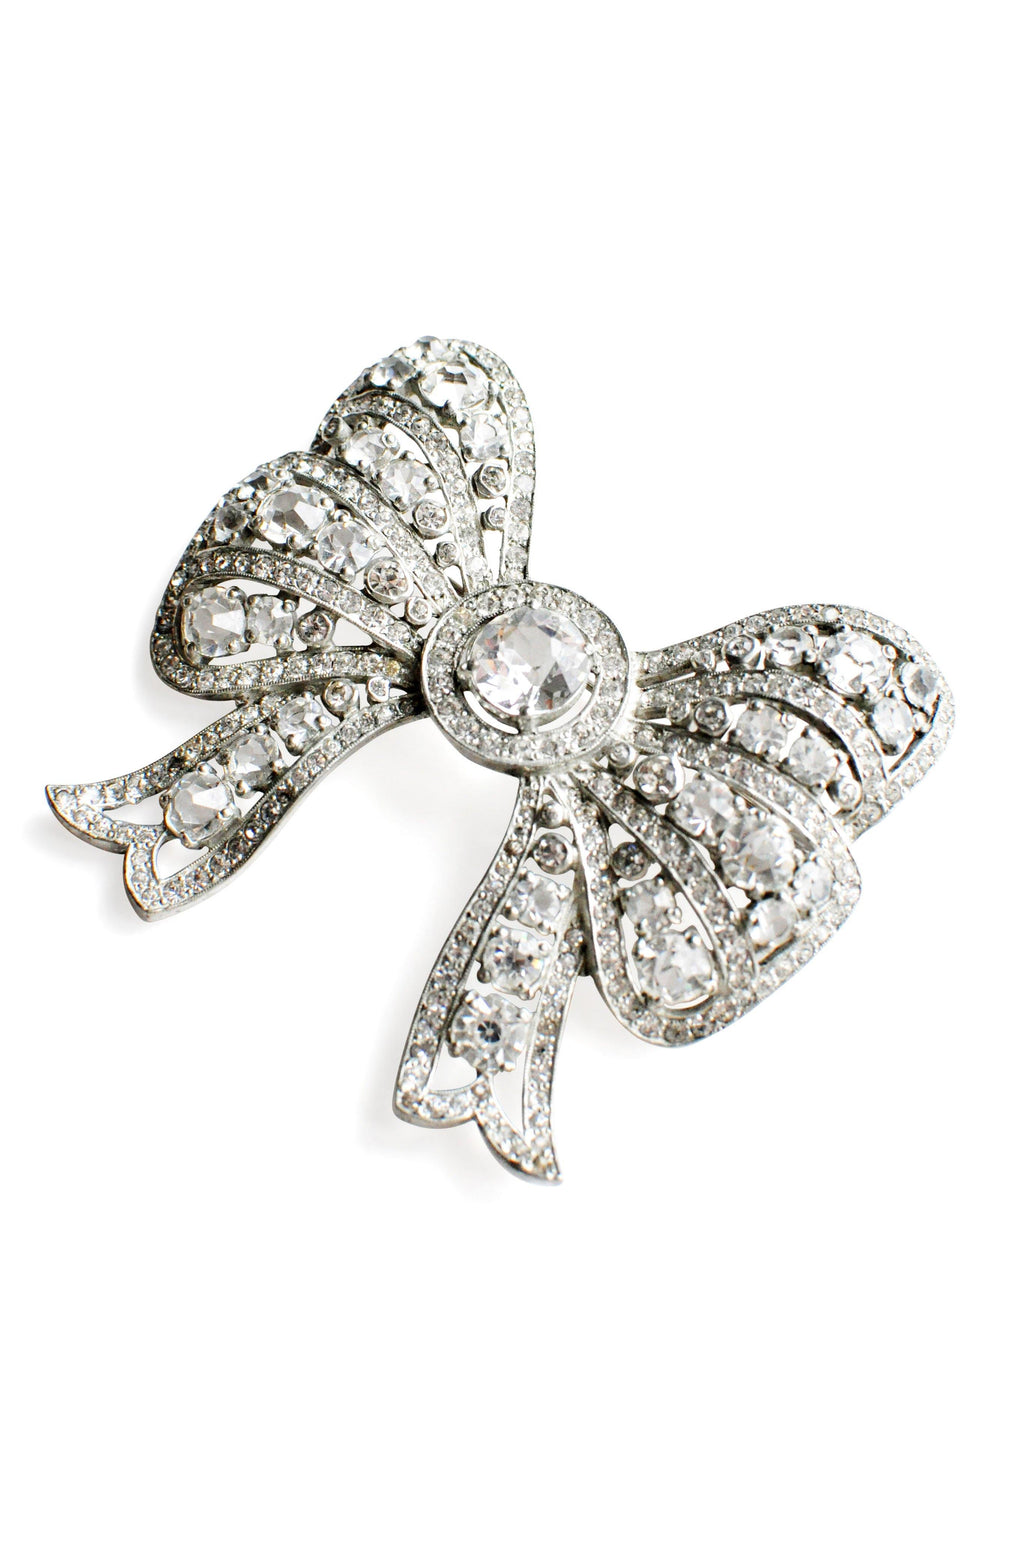 Rhinestone Bow Statement Brooch